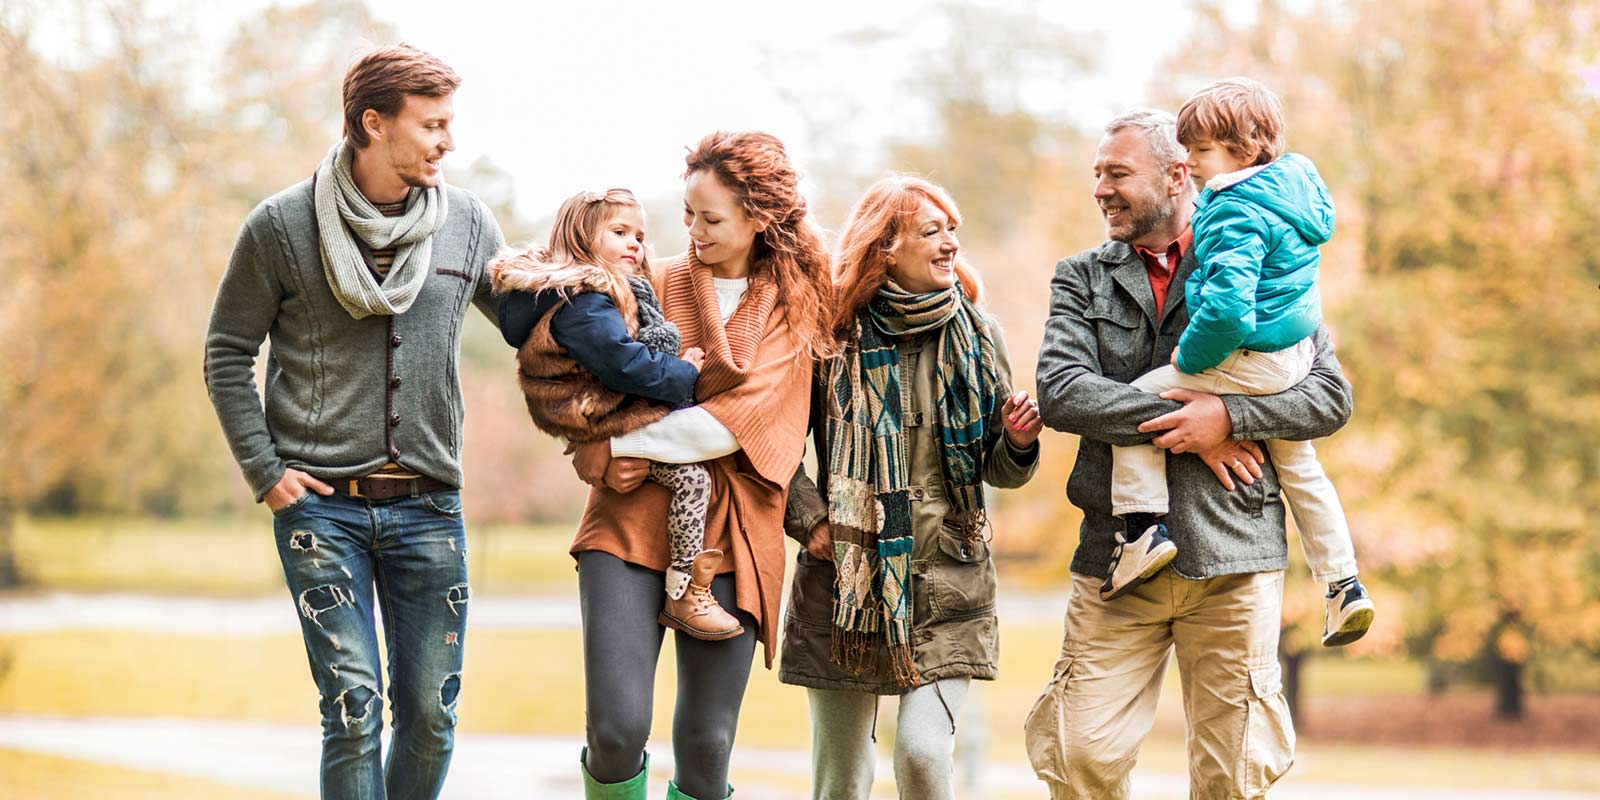 A family walks outside together in sweaters and scarves.